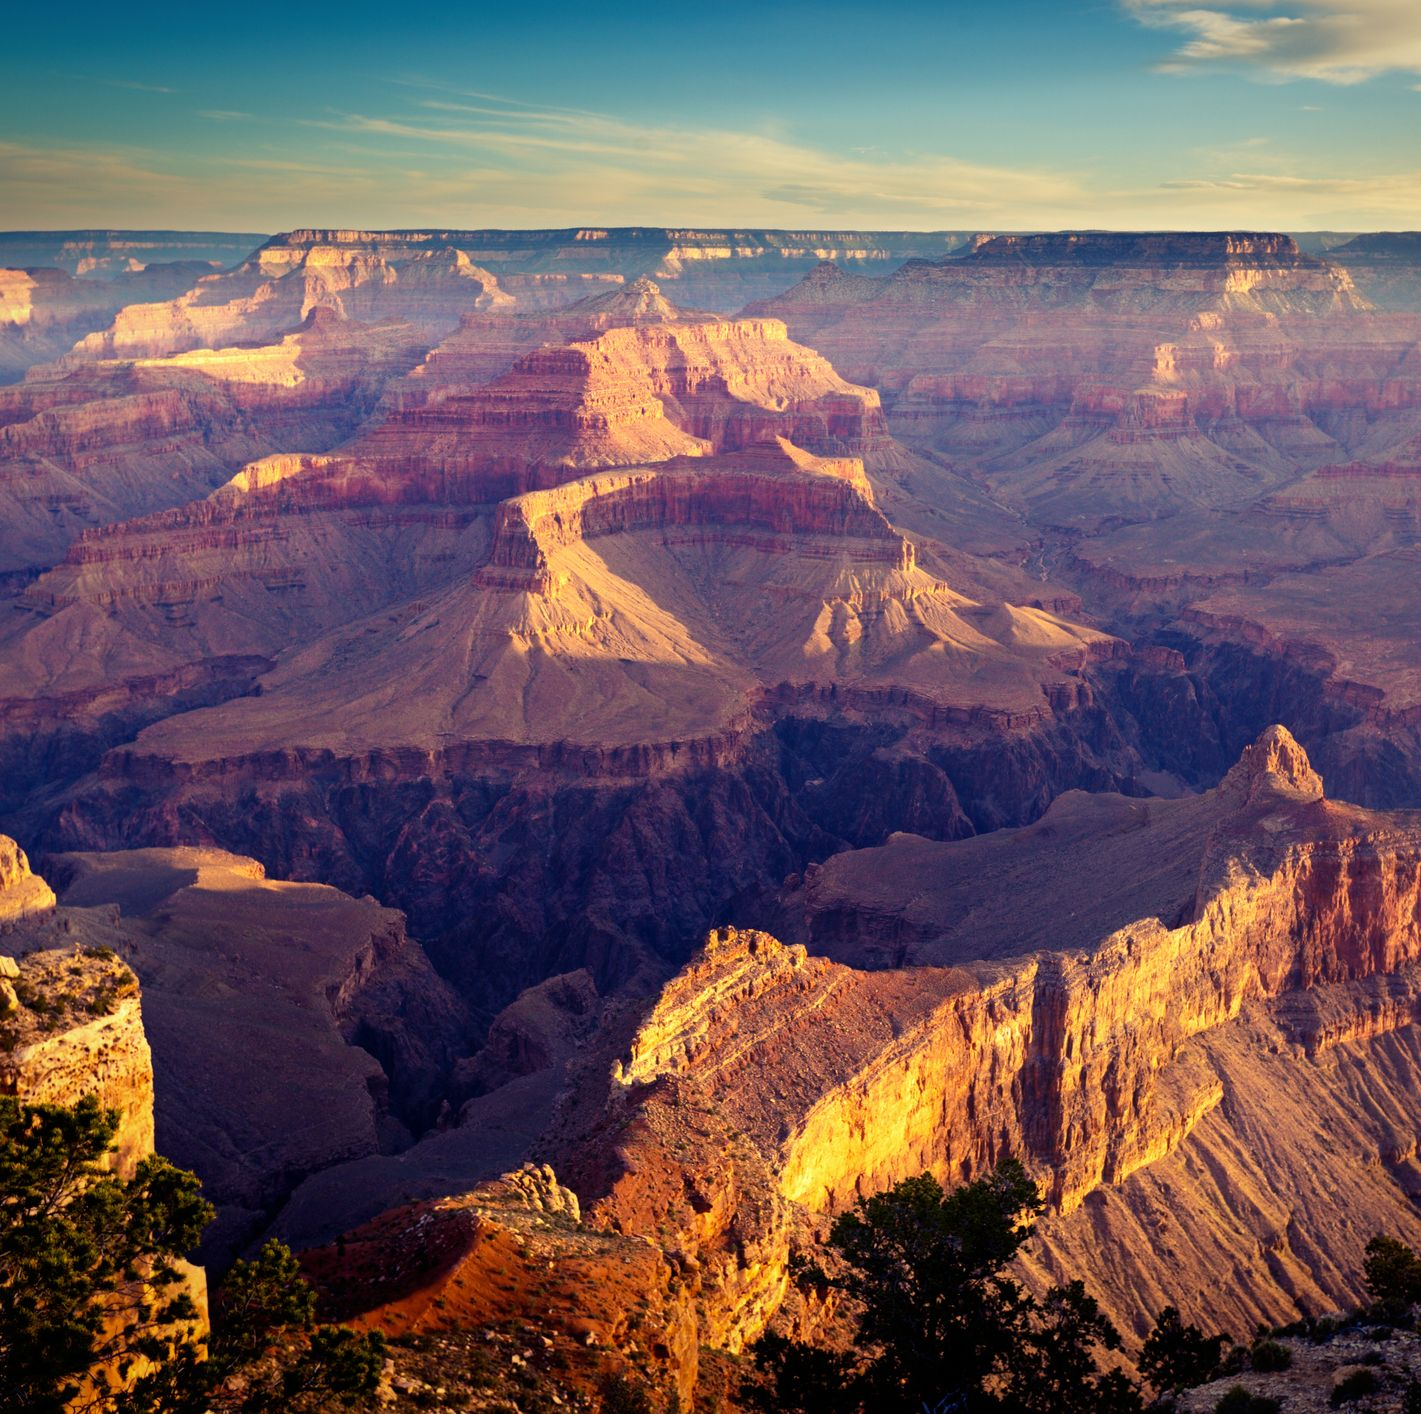 70-Year-Old Woman Latest to Die After Falling Off Grand Canyon Edge This Year